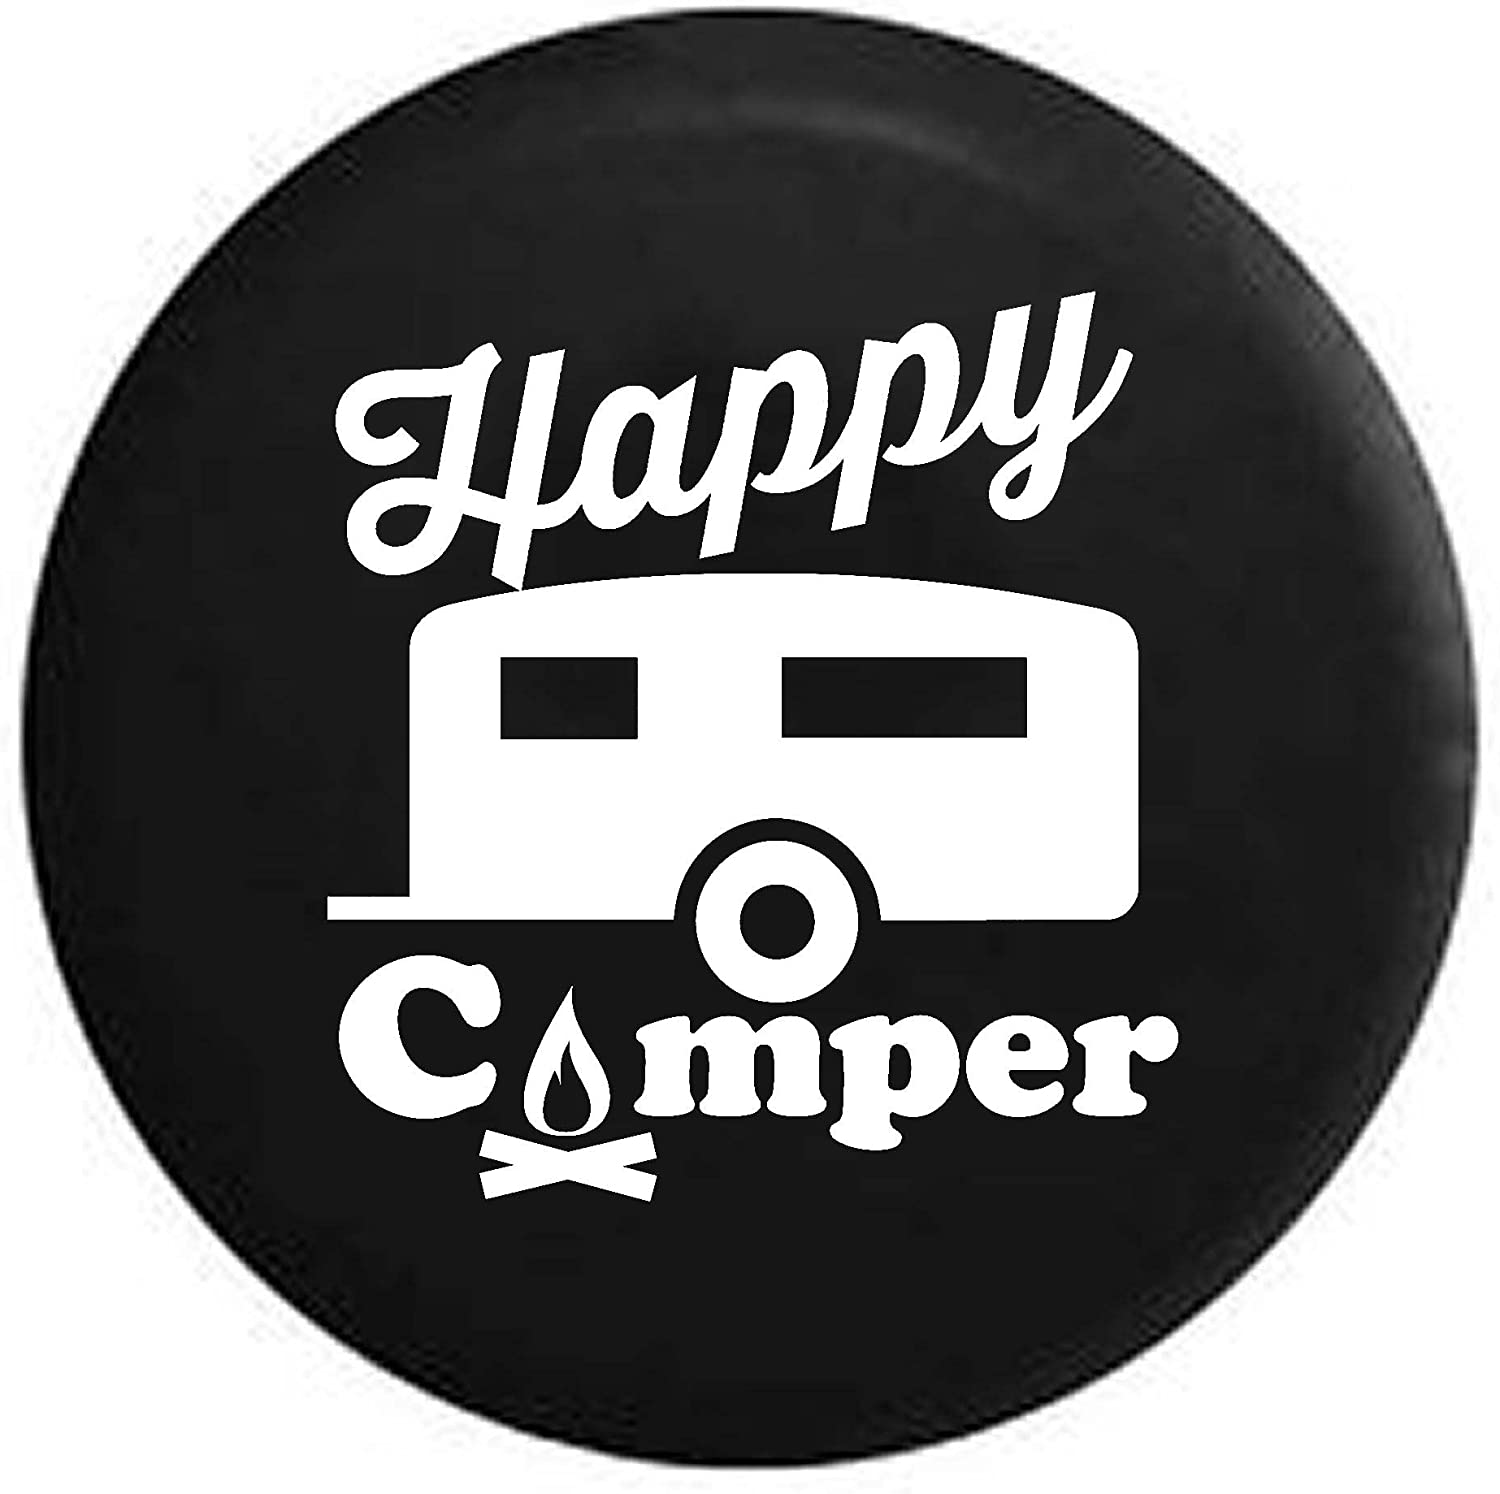 Pike Happy Camper Camp Fire RV Max 63% Weekly update OFF Trailer 27 Tire Black Spare Cover